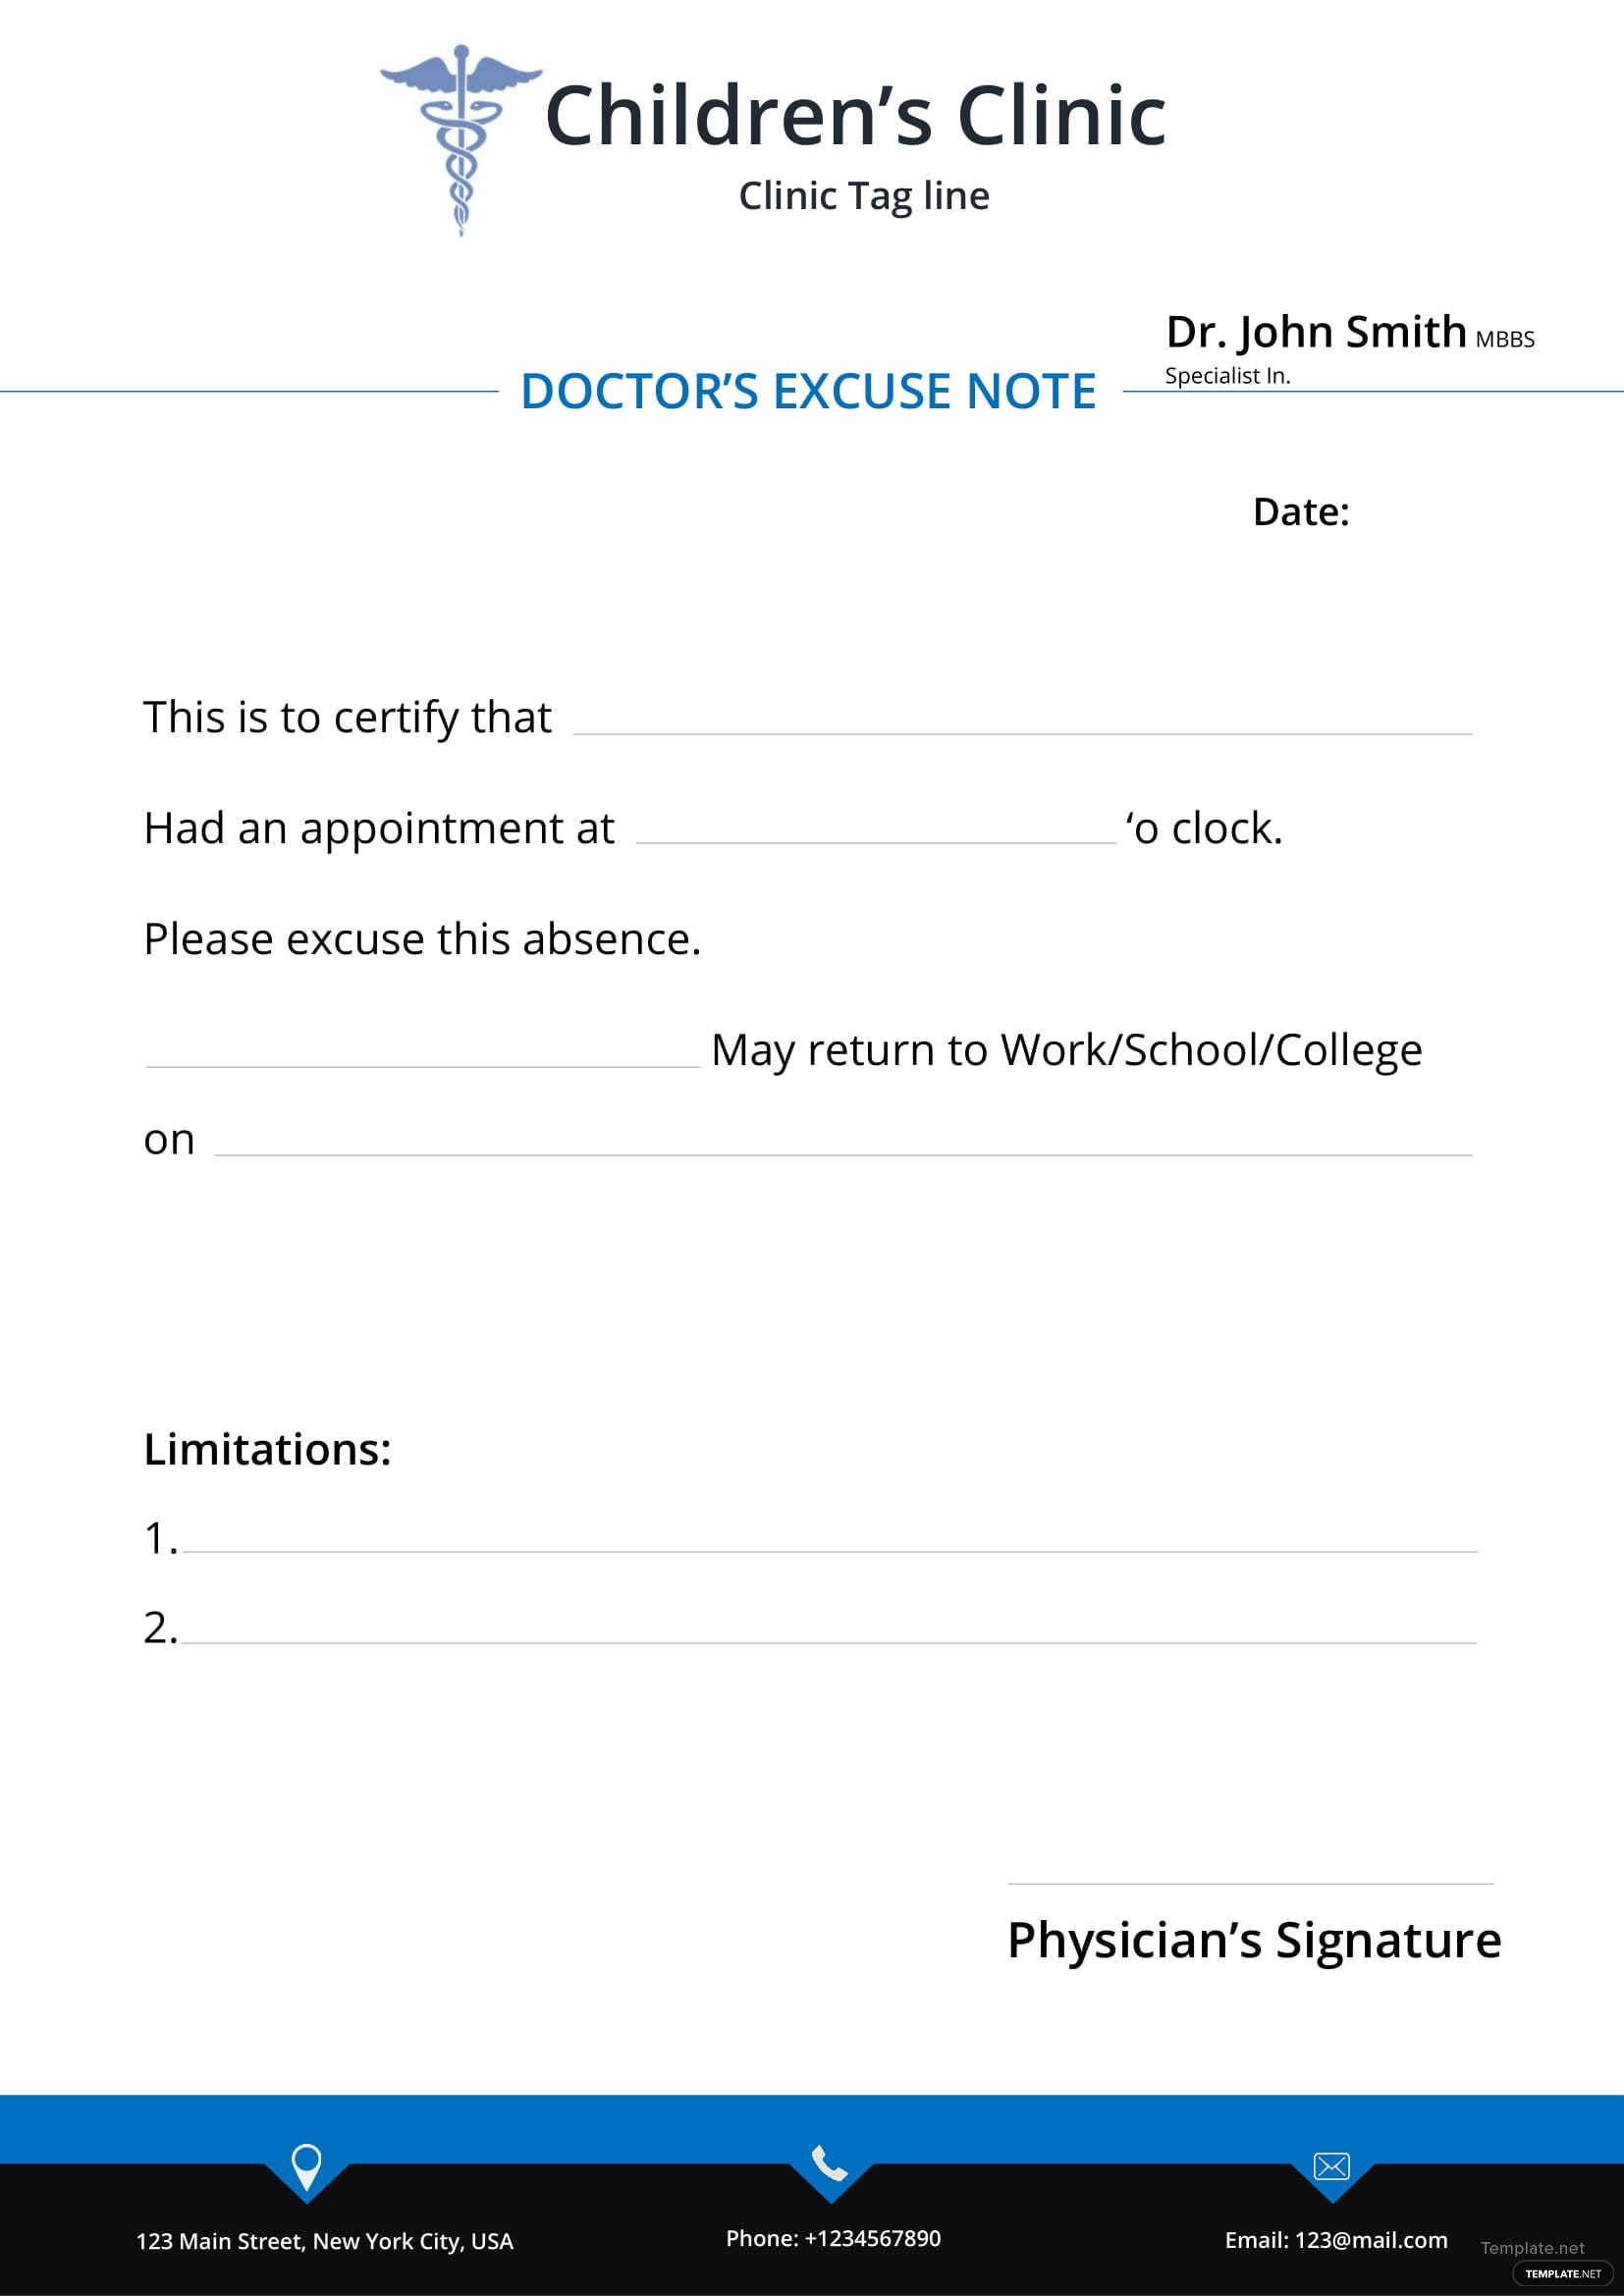 doctor u2019s excuse note template in microsoft word